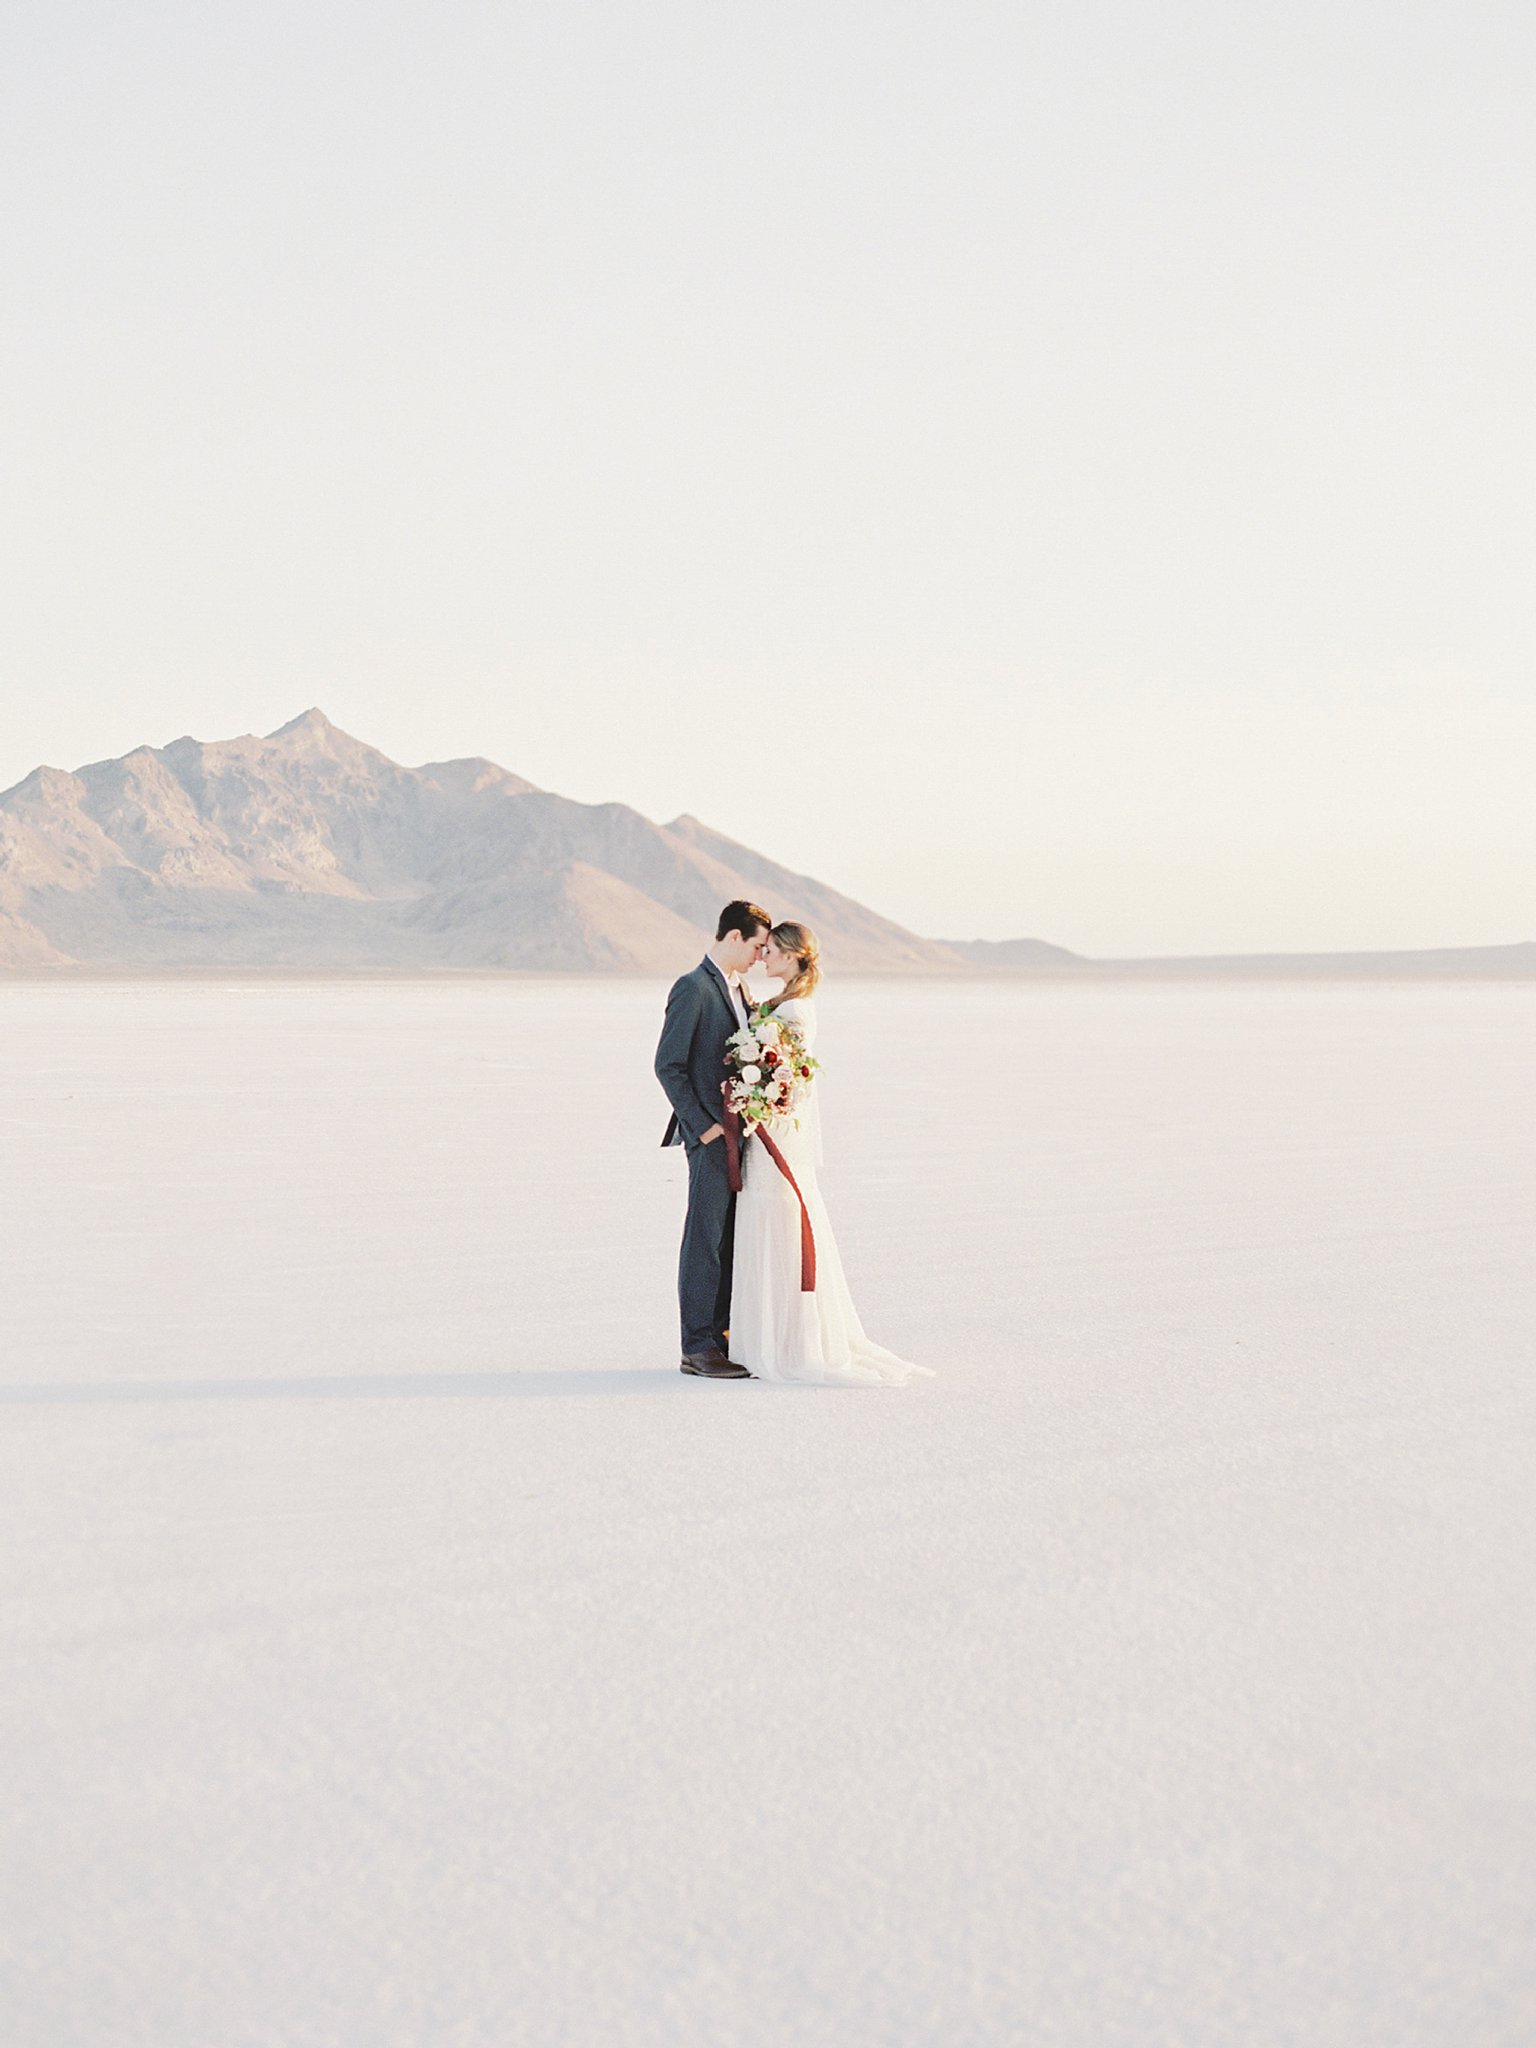 Romantic Anniversary Session at the Salt Flats in Utah